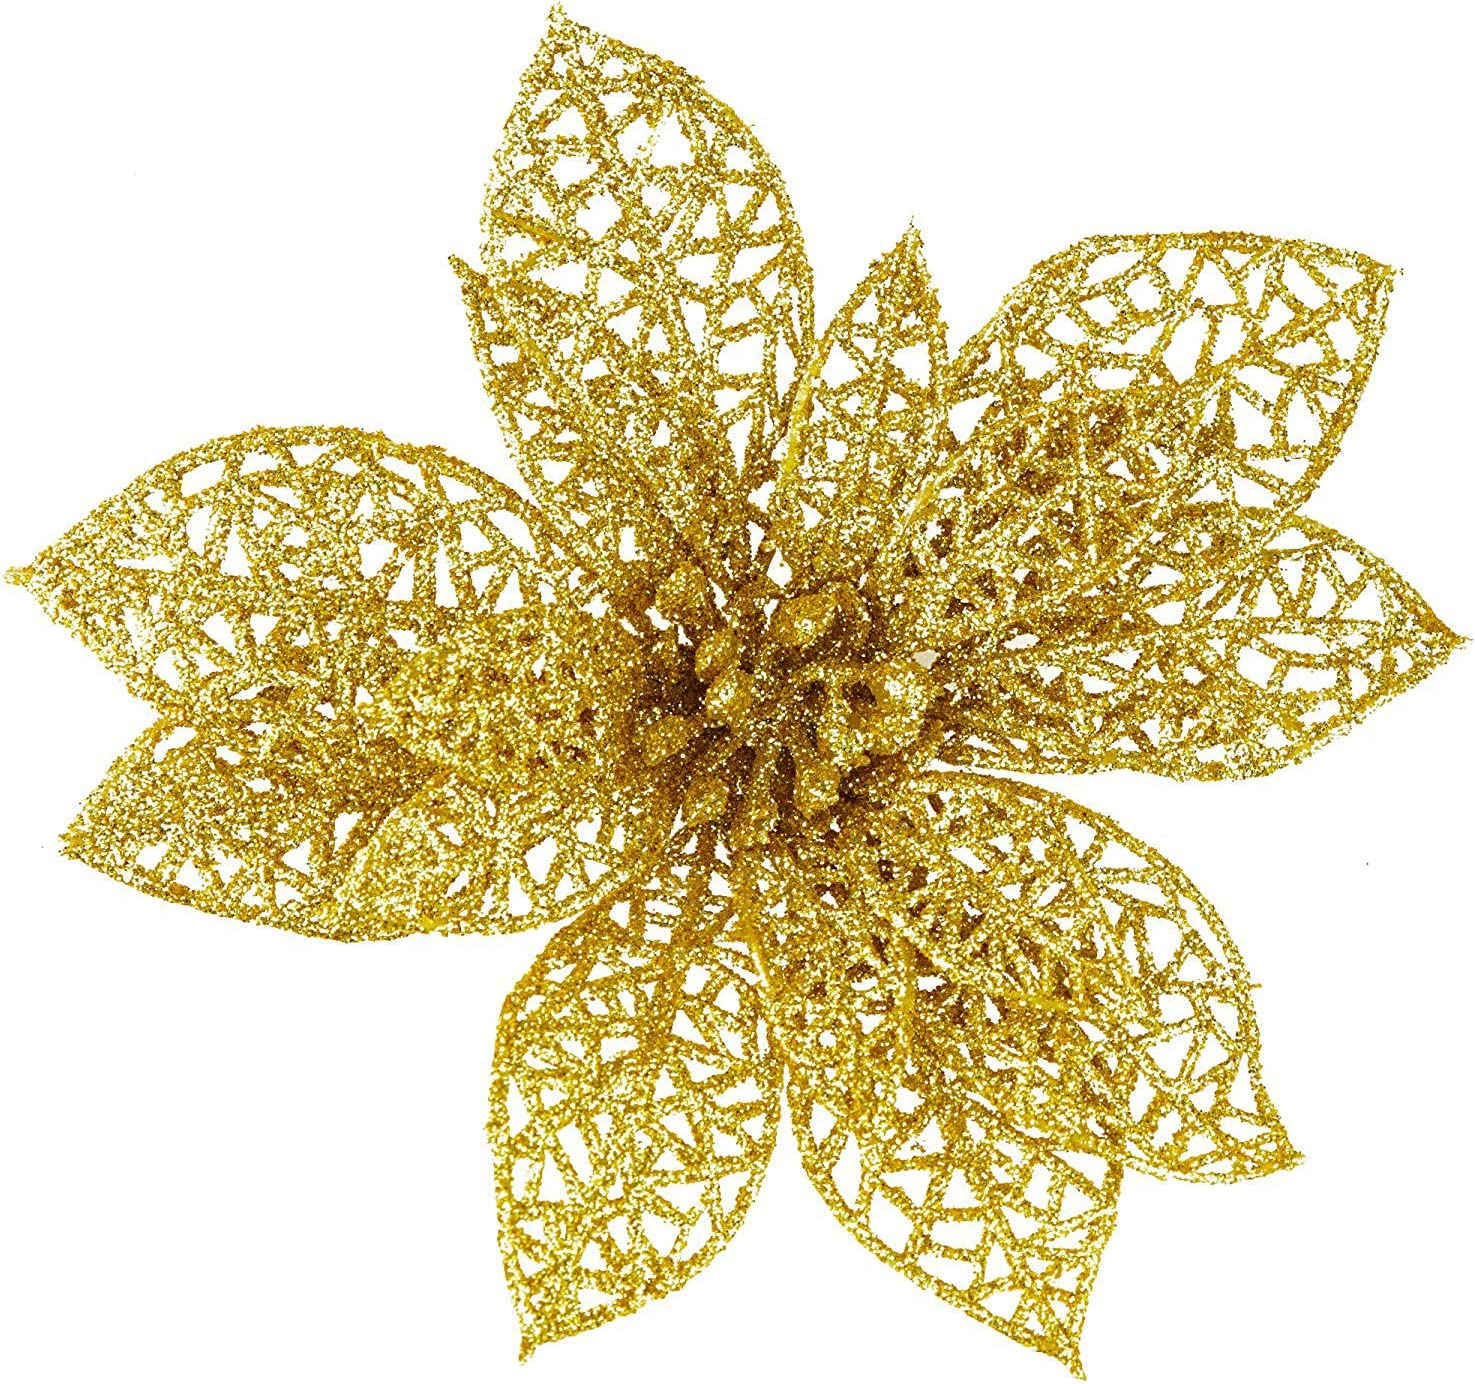 20 Piece Star Gold Ornaments Set, Christmas Tree Decoration, Glittery Bright Gold Star-Shaped Poinsettia